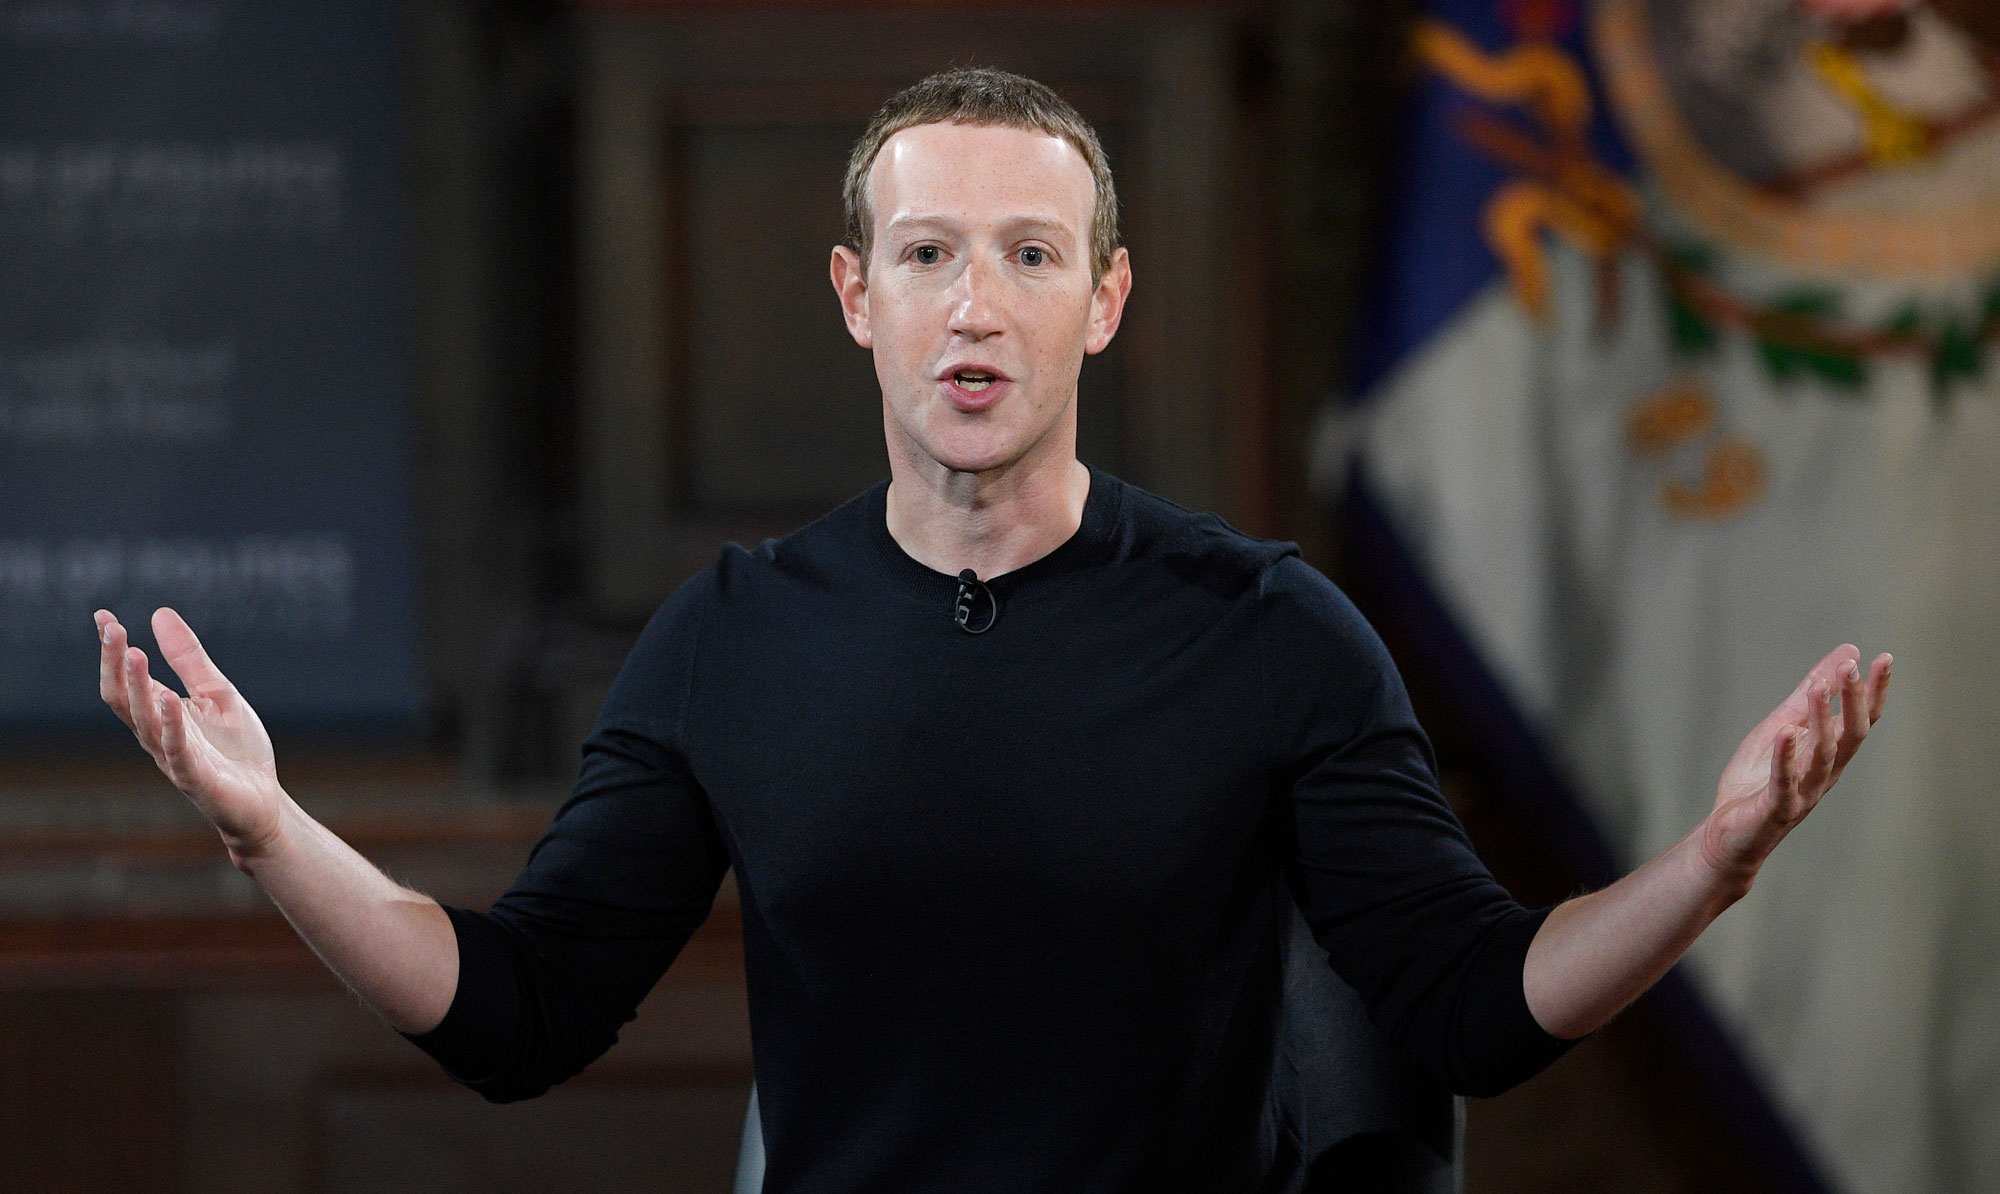 Mark Zuckerberg has defended Facebook's decision to let politicians lie in ads